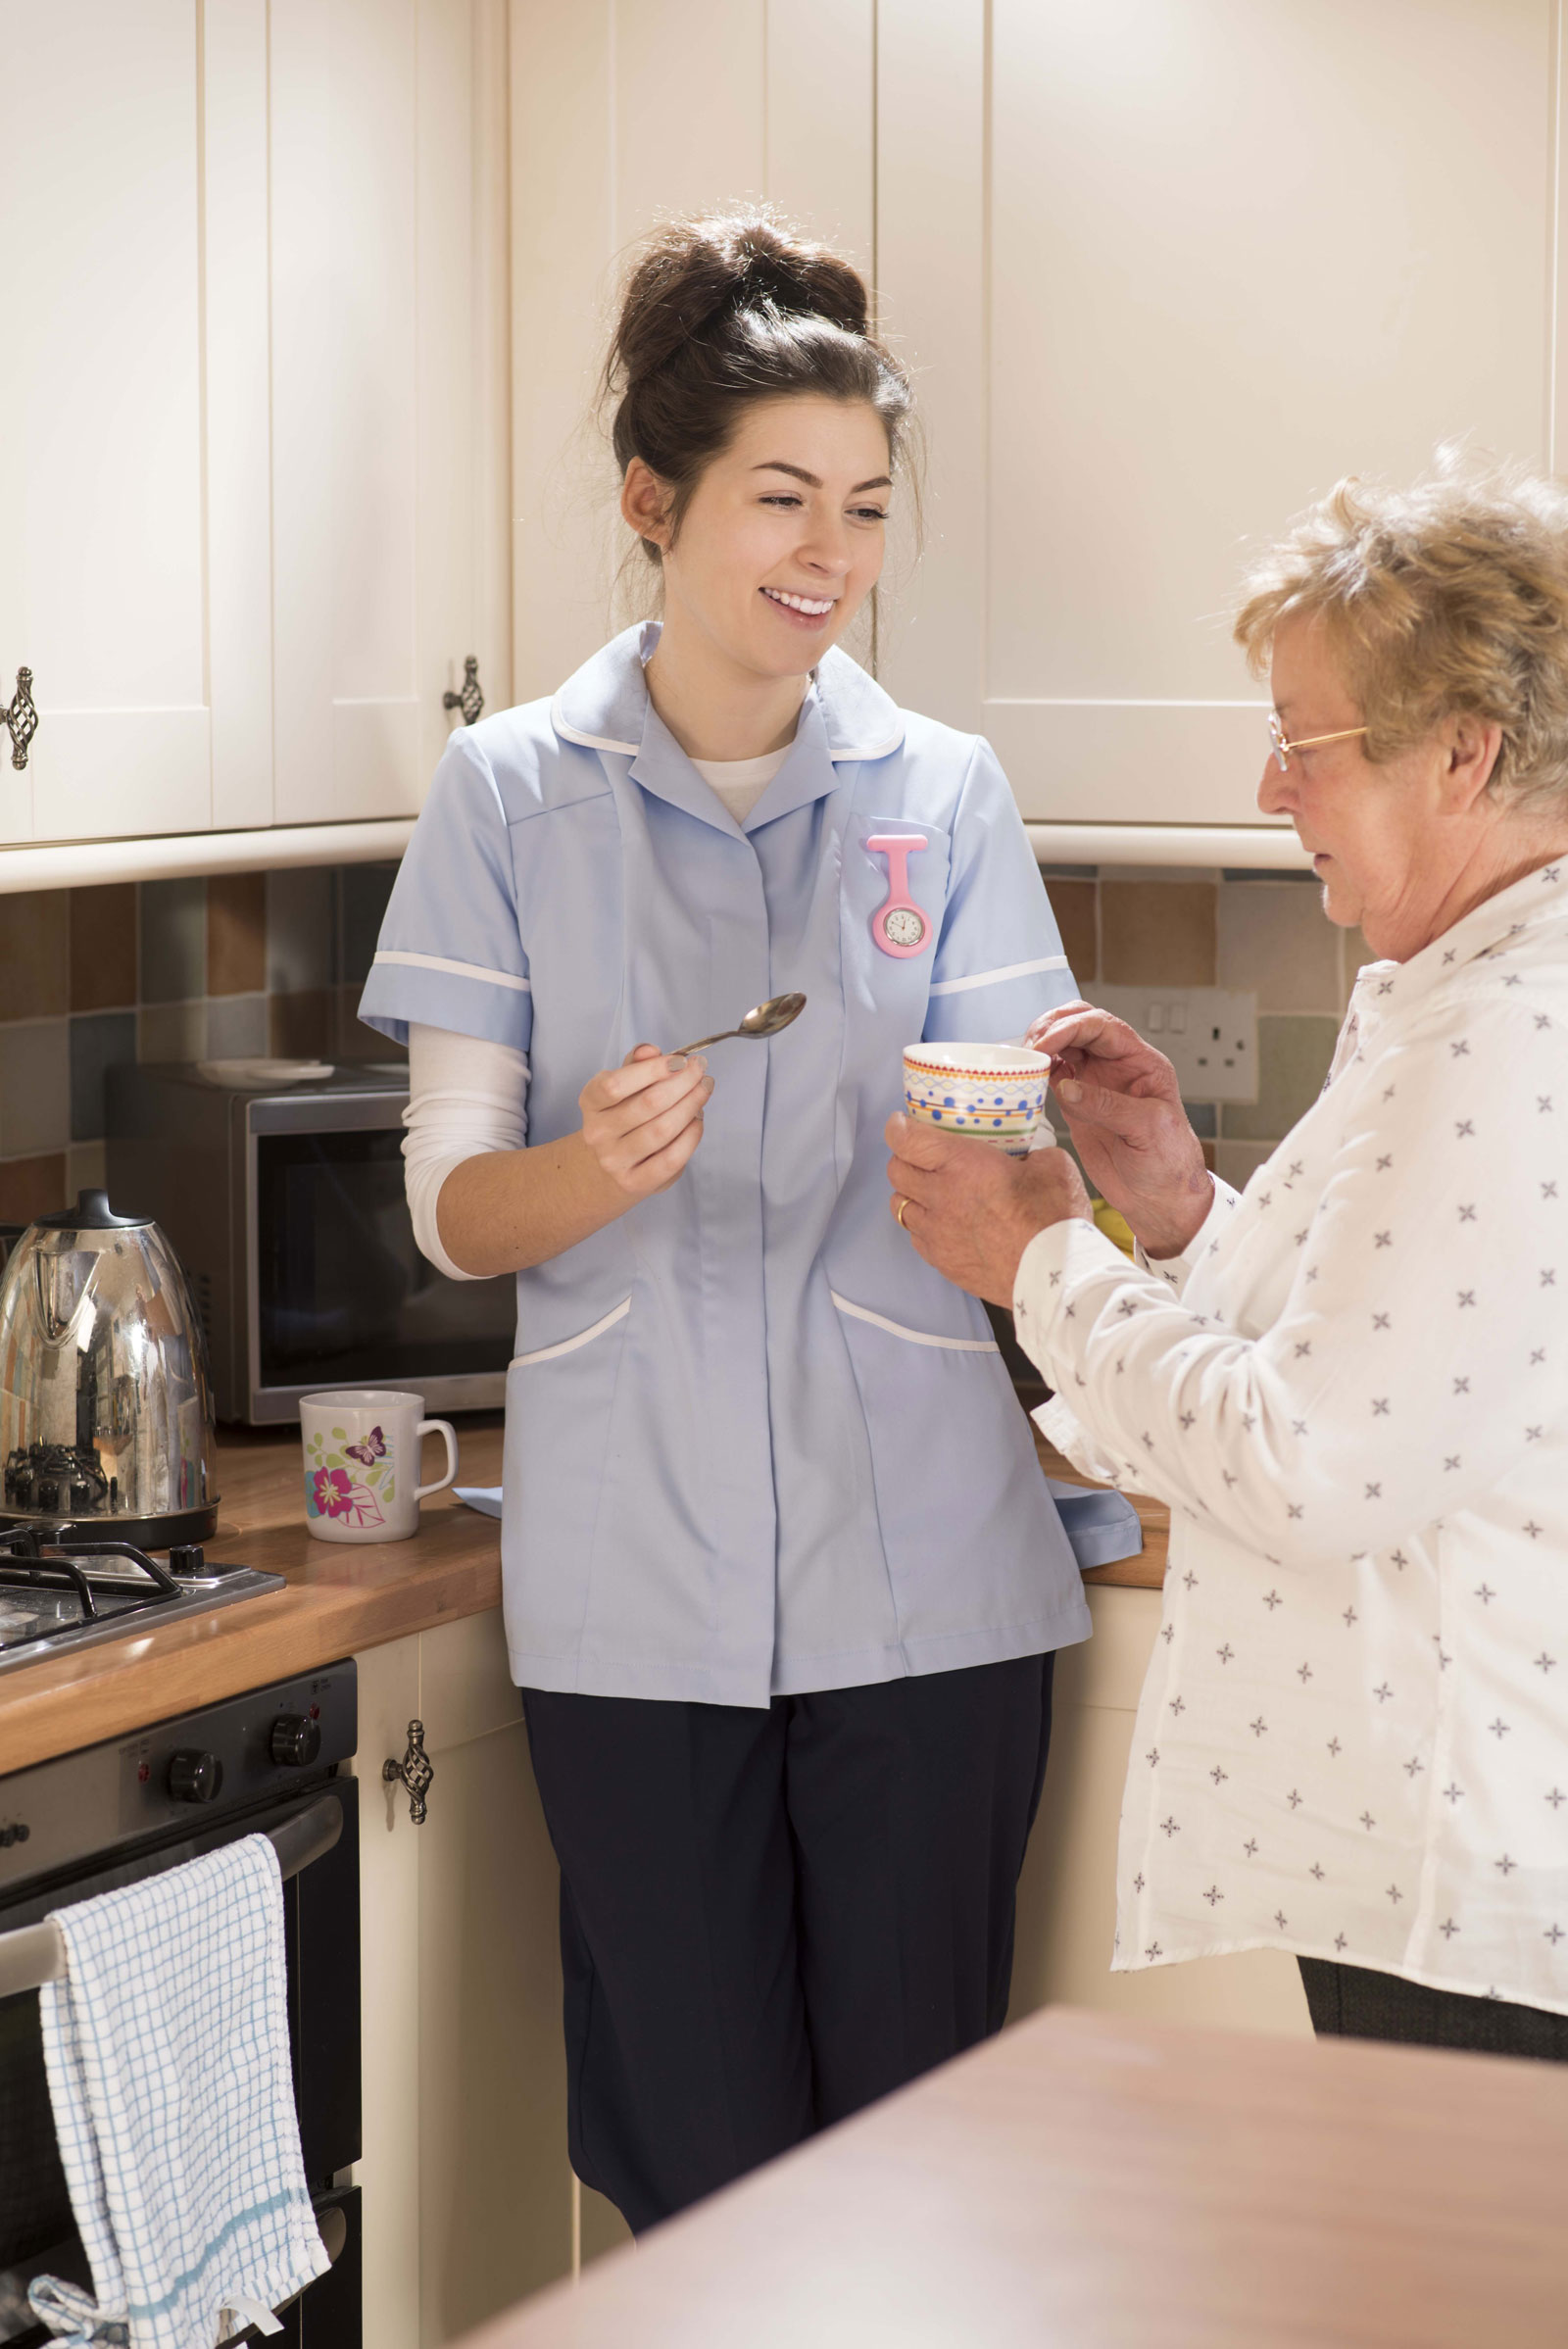 Image of careworker with eldery person